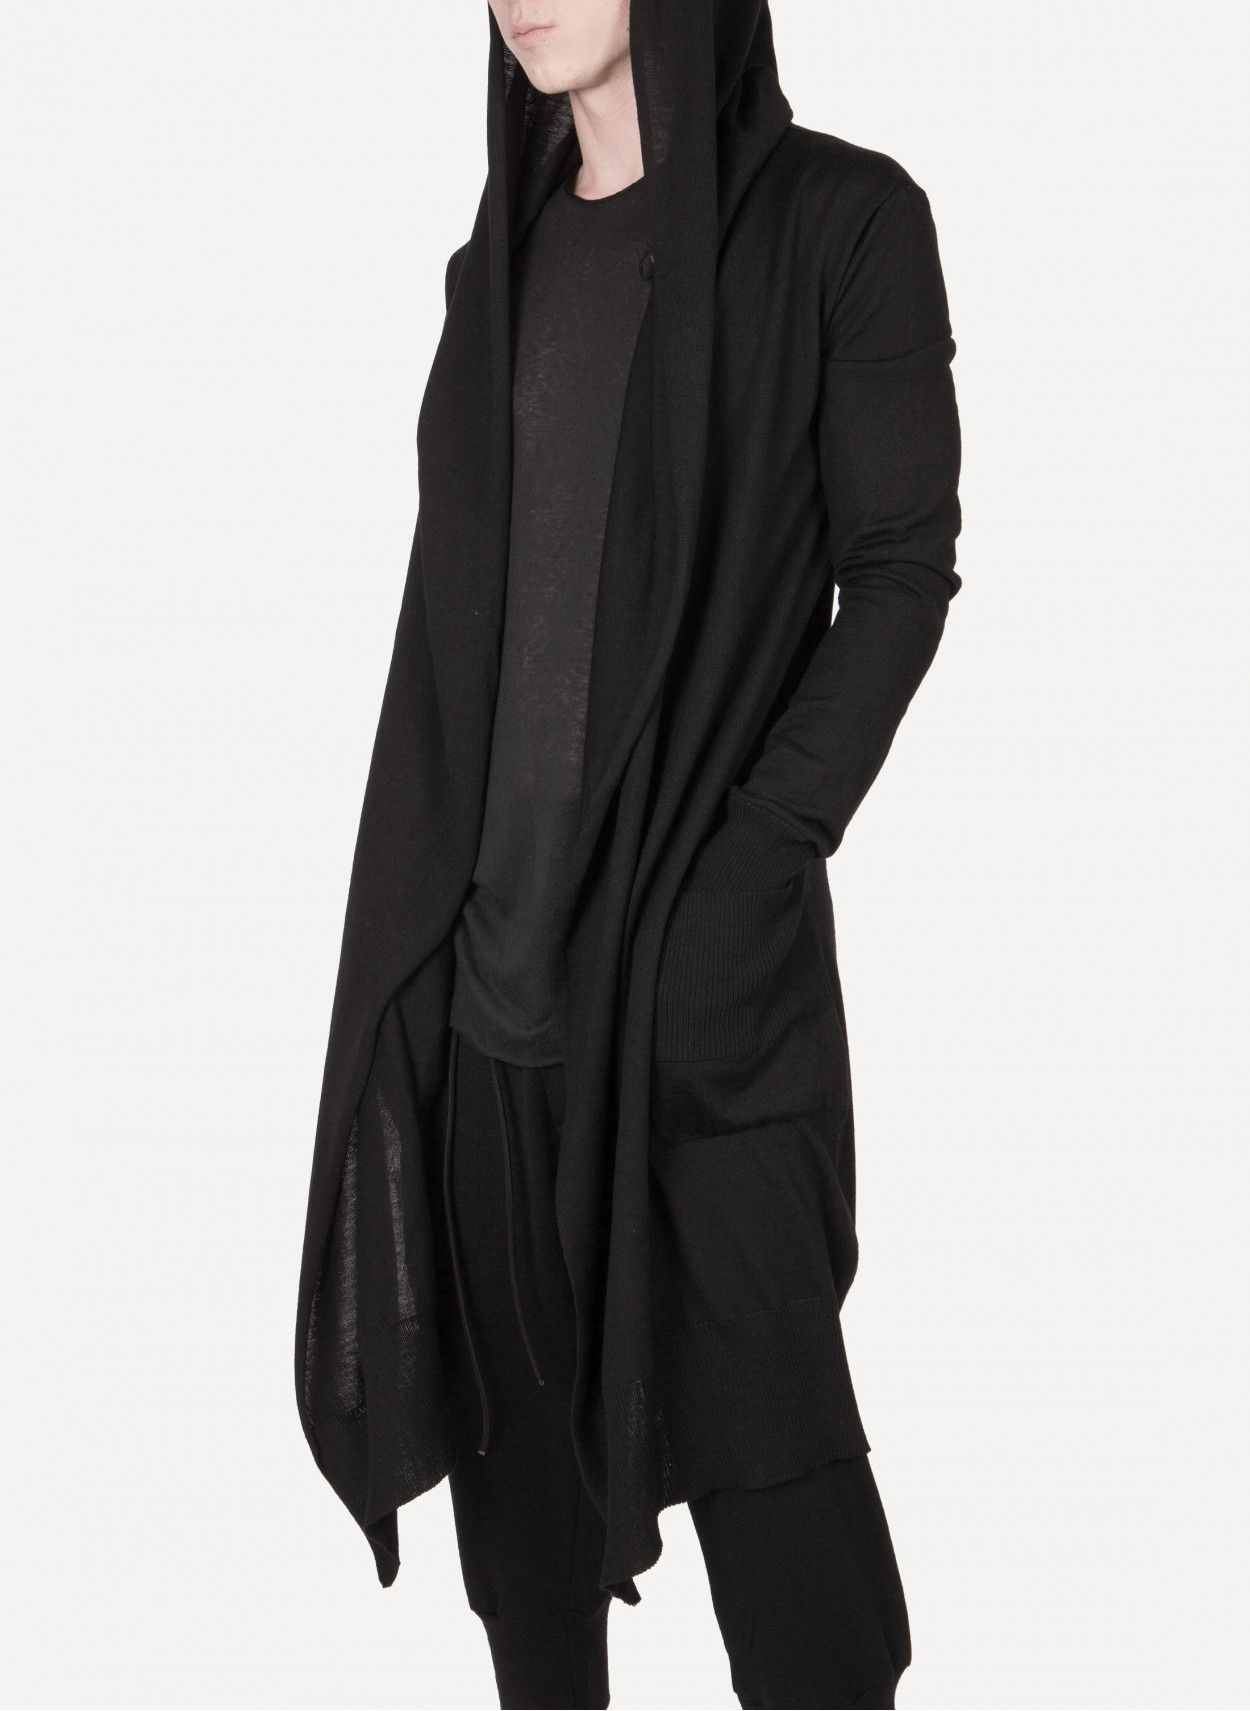 Daniel Andresen - SULA Long Hooded Cardigan https://cruvoir.com/en ...